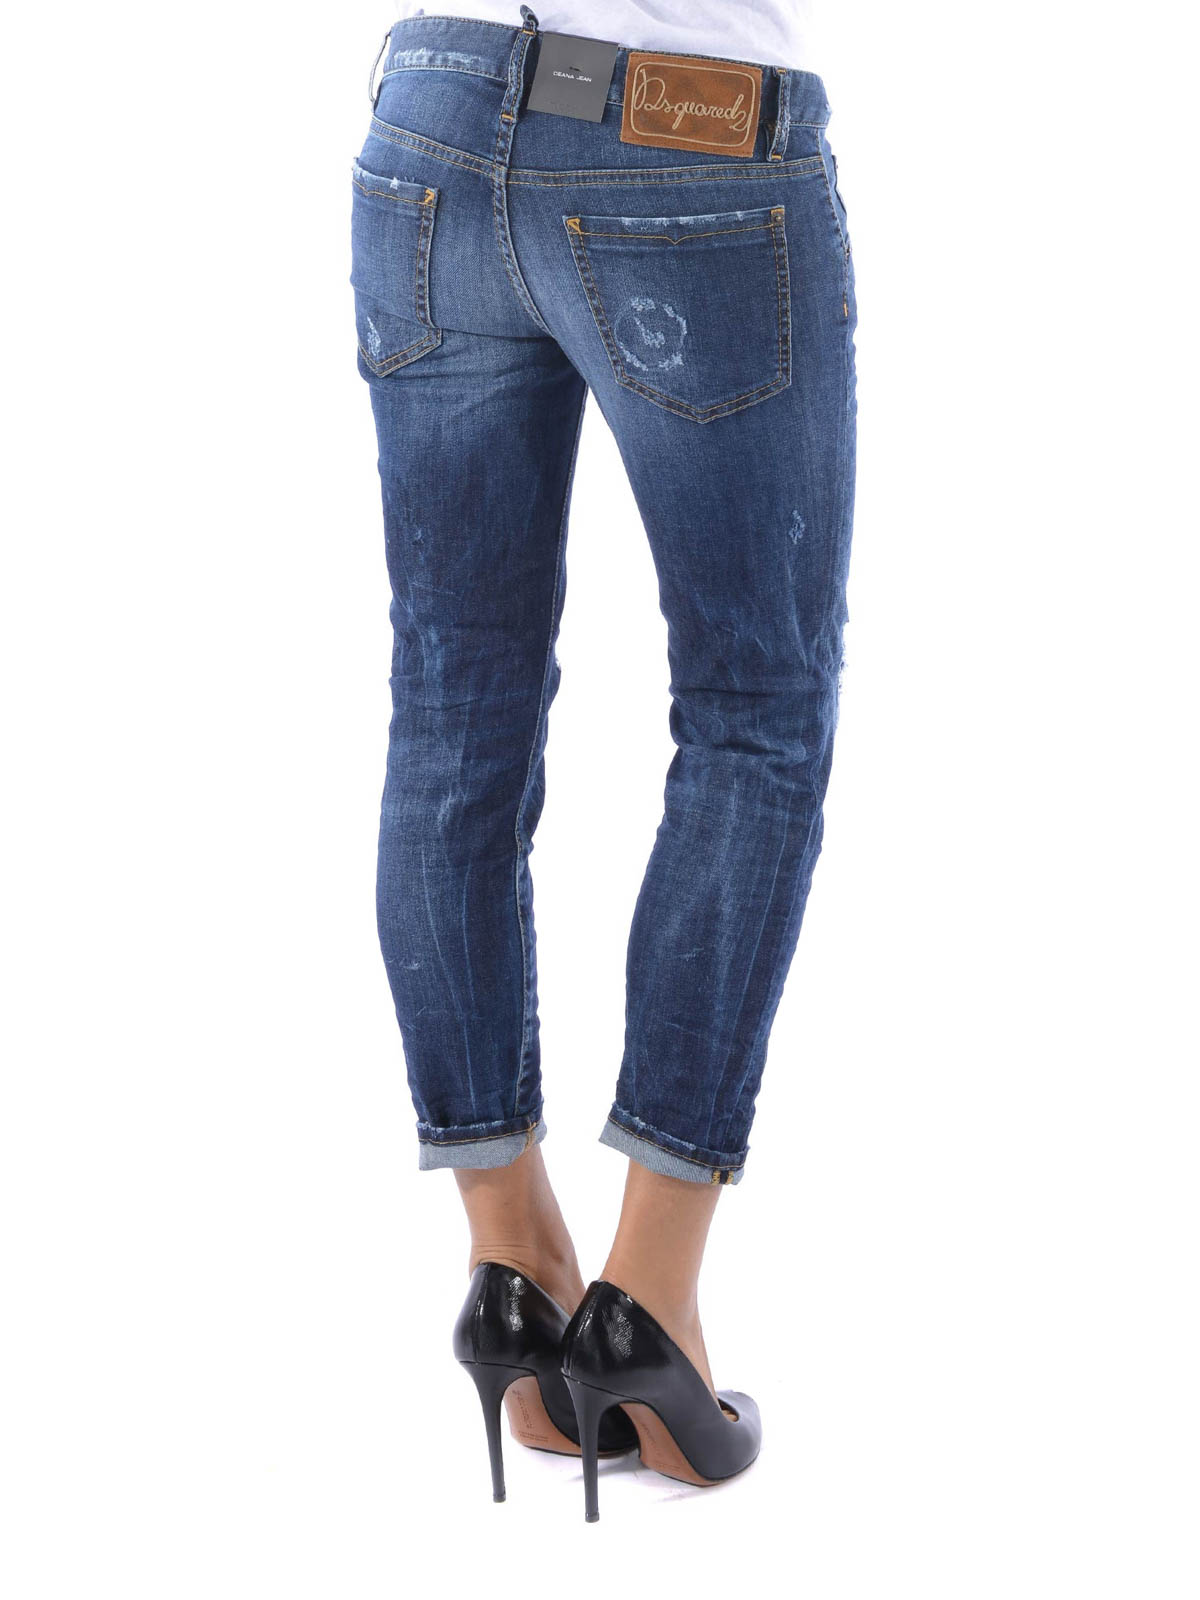 Shop jeans, t-shirts, dresses, jackets and more. Hollister is the fantasy of Southern California, with clothing that's effortlessly cool and totally accessible. Shop jeans, t-shirts, dresses, jackets and more. Ripped Jeans Jeans All Bottoms Jeans View All Extreme Skinny Jean Legging Super Skinny Skinny Mom Jean Boyfriend Culotte Boot Crop.